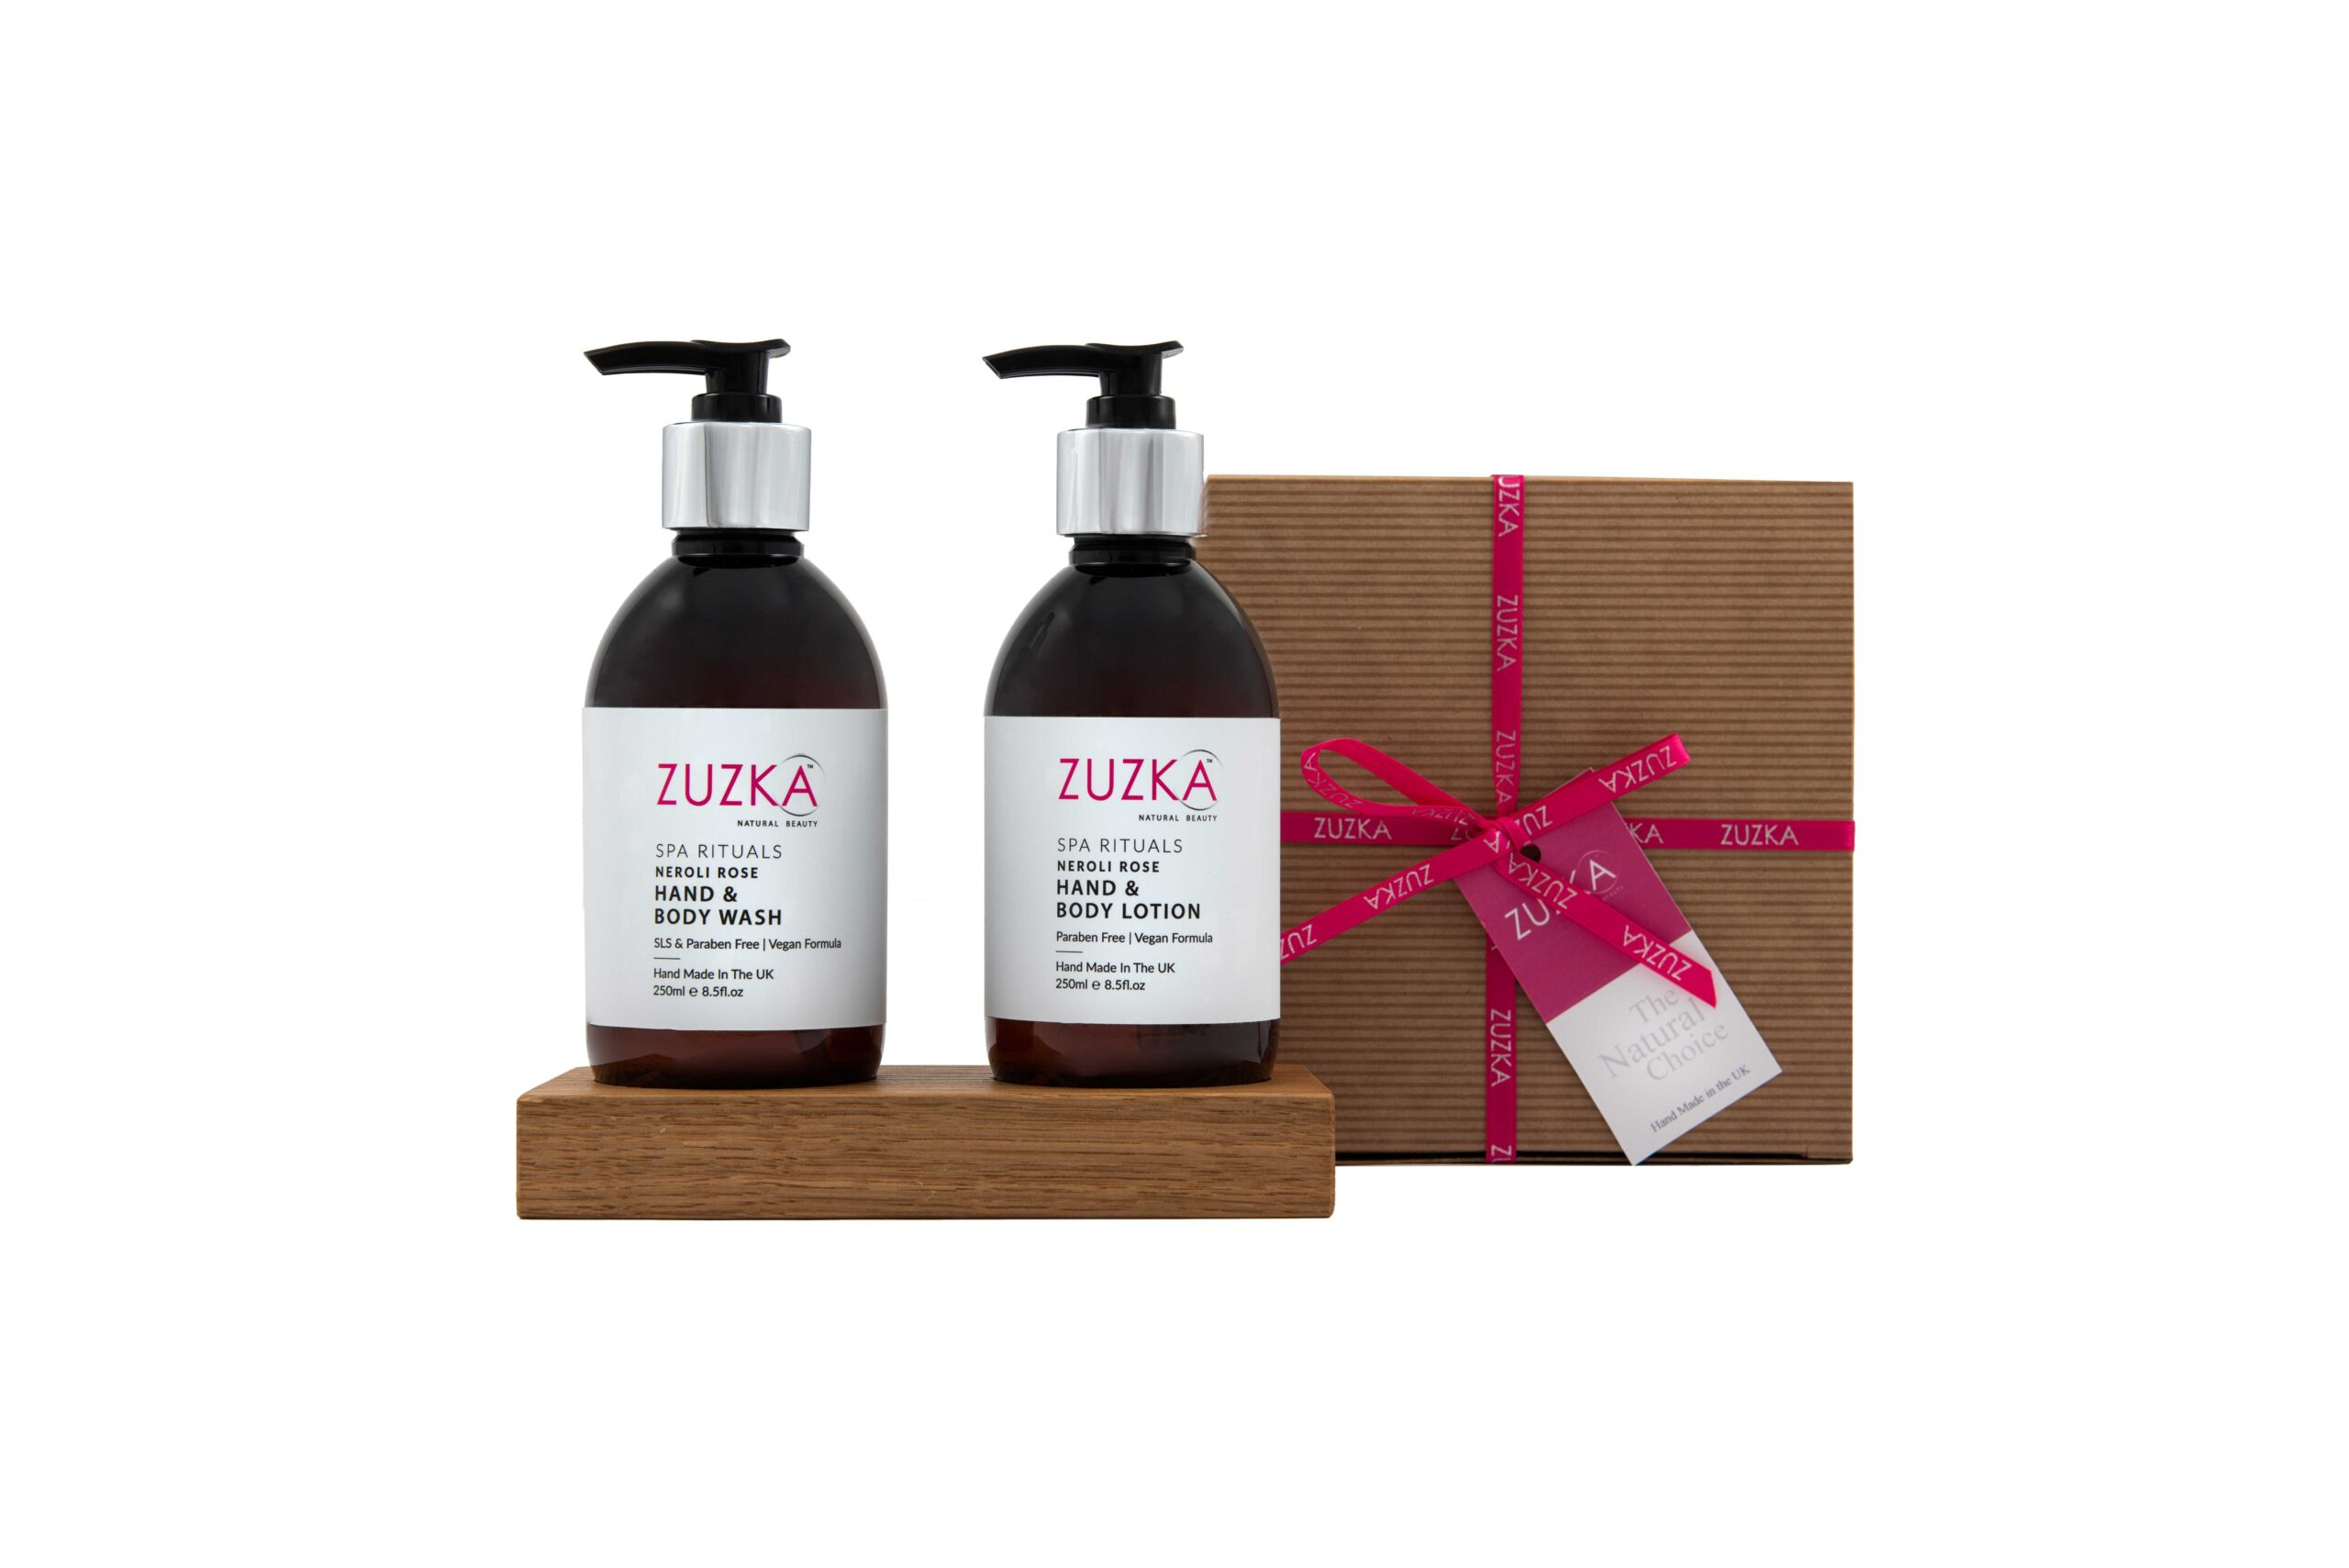 Zuzka Spa Rituals 250ml Hand & Body Wash & Lotion Duo with Stand